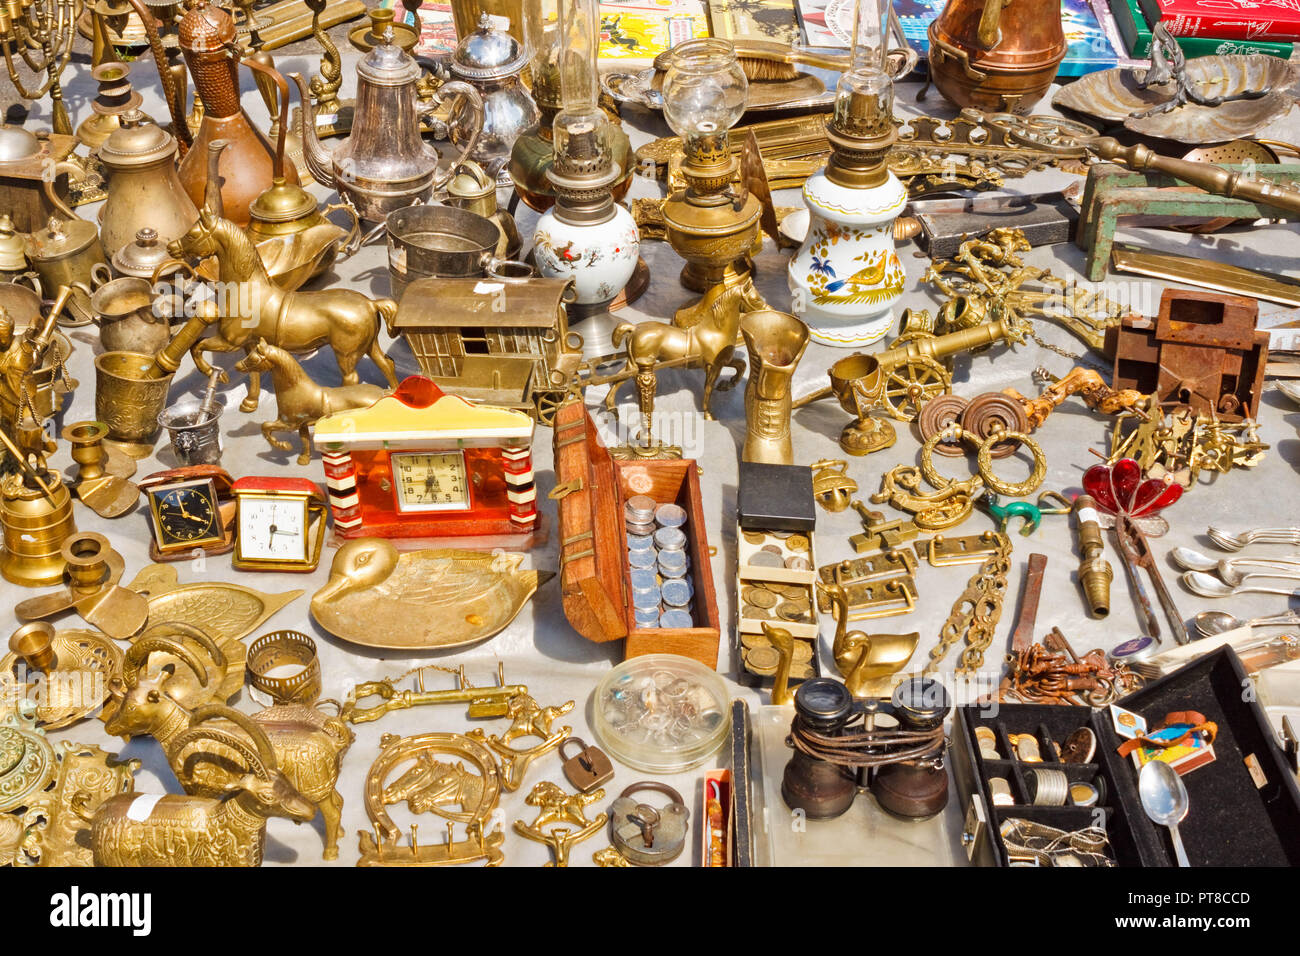 Lviv, Ukraine - July 10, 2015: Various things made of yellow metals for sale on a flea market. Decorative figurines, coins, lamps and other old and vi Stock Photo